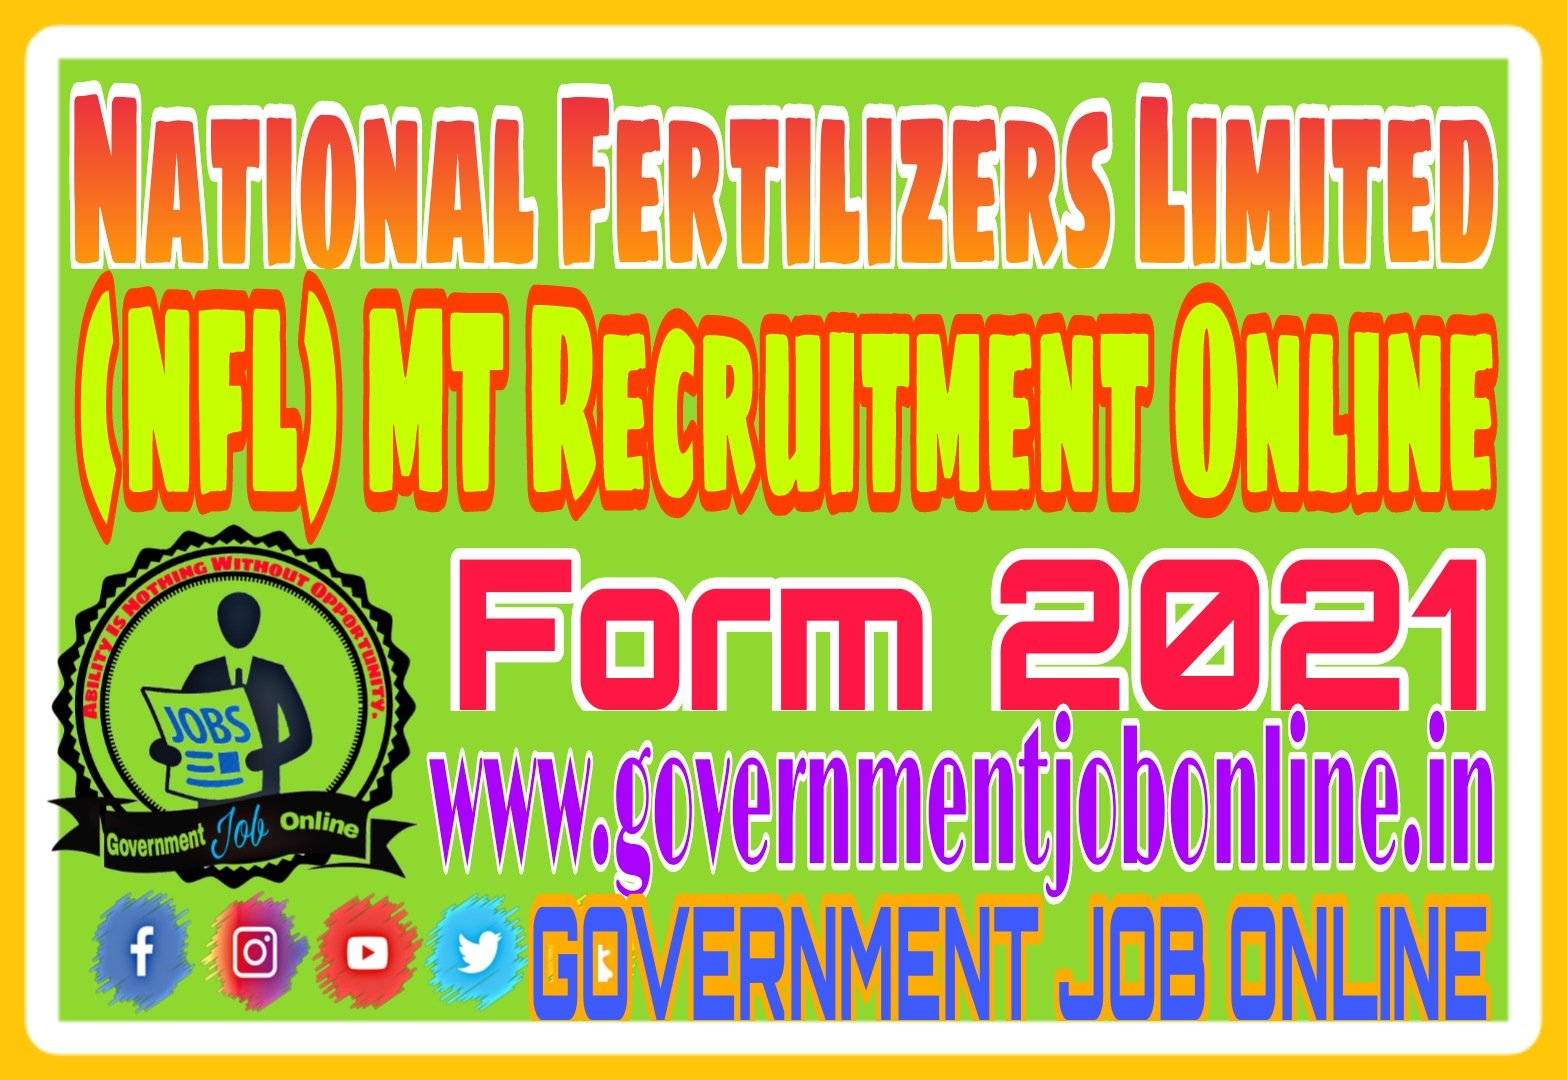 NFL Management Trainee MT Recruitment Form 2021